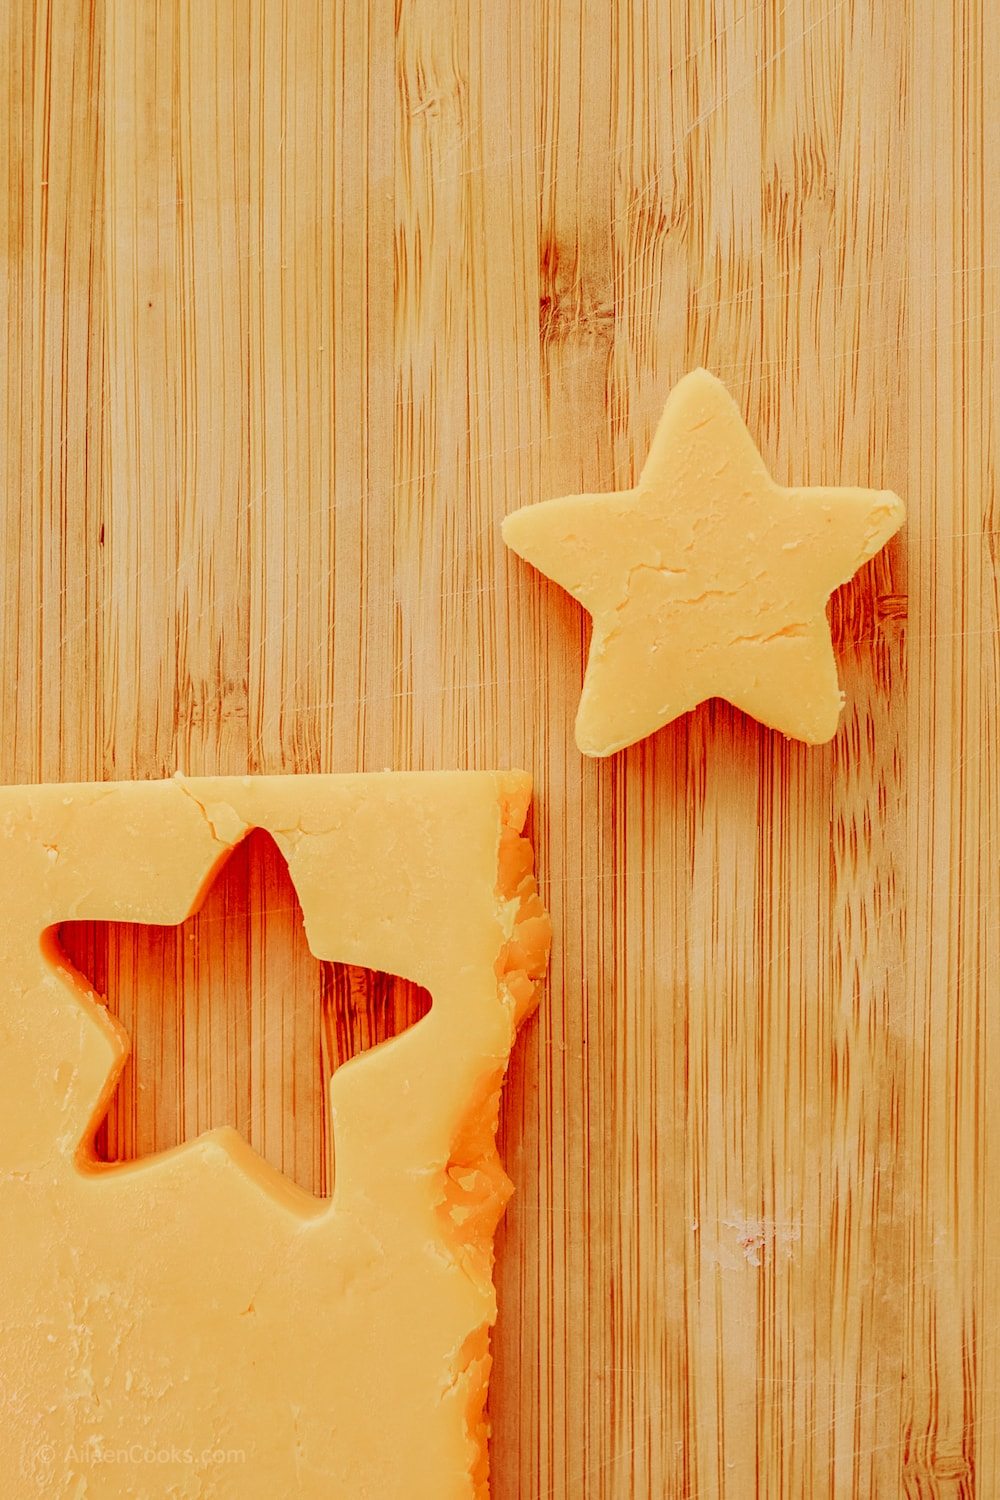 Cheese cut into star shapes on a wooden cutting board.